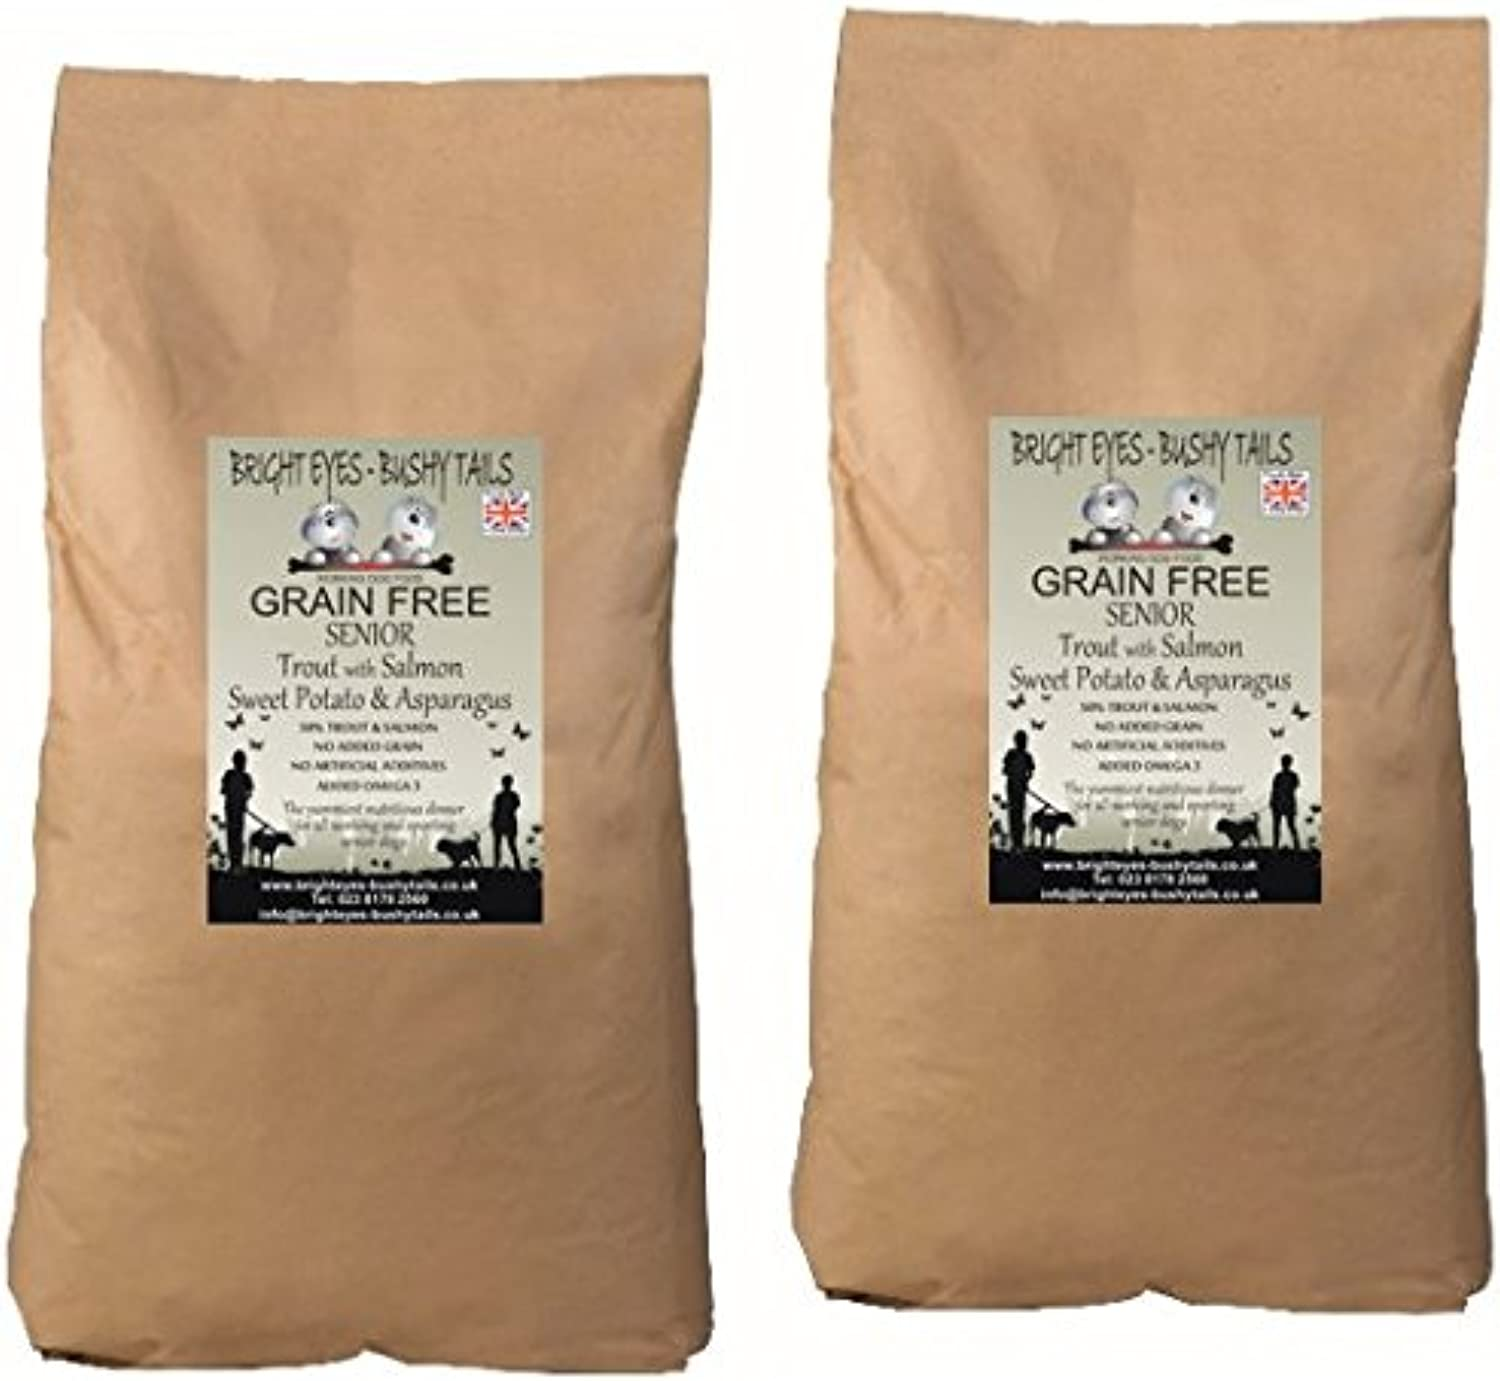 BRIGHT EYES  BUSHY TAILS  1 SENIOR Grain Free Dog Food TROUT with SALMON, Sweet Potato and Asparagus 2 x 15Kg. 50% Fish. Grain free, Wheat and wheat gluten free, no artificial flavours, colourants or preservatives. Vet approved, gentle recipe. Specially f